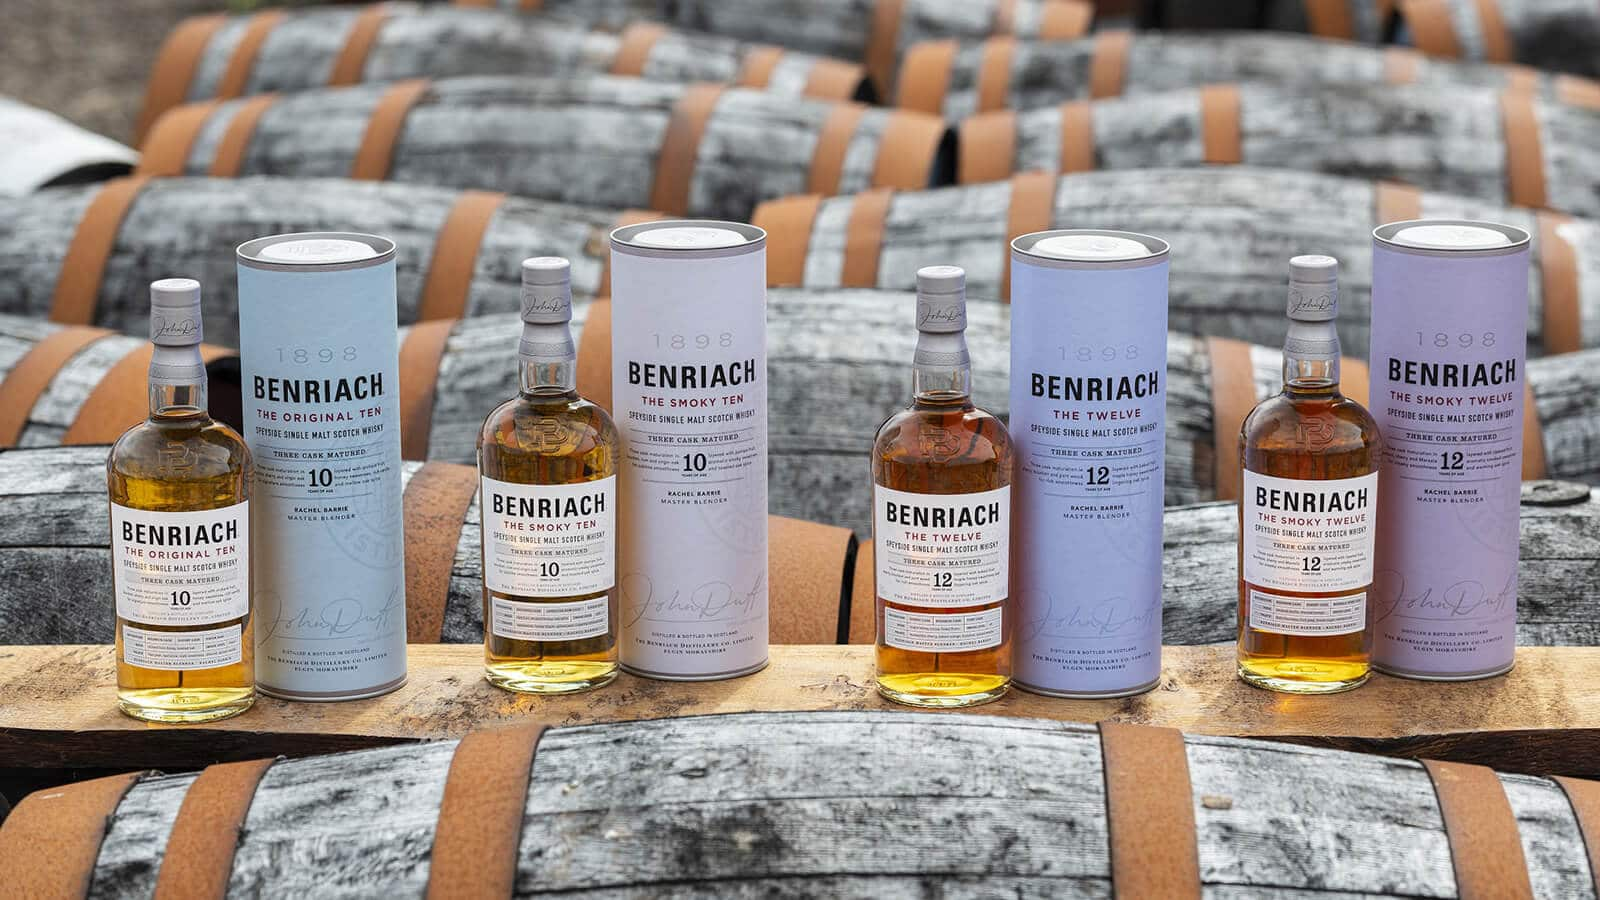 Benriach updates their portfolio with four new core additions